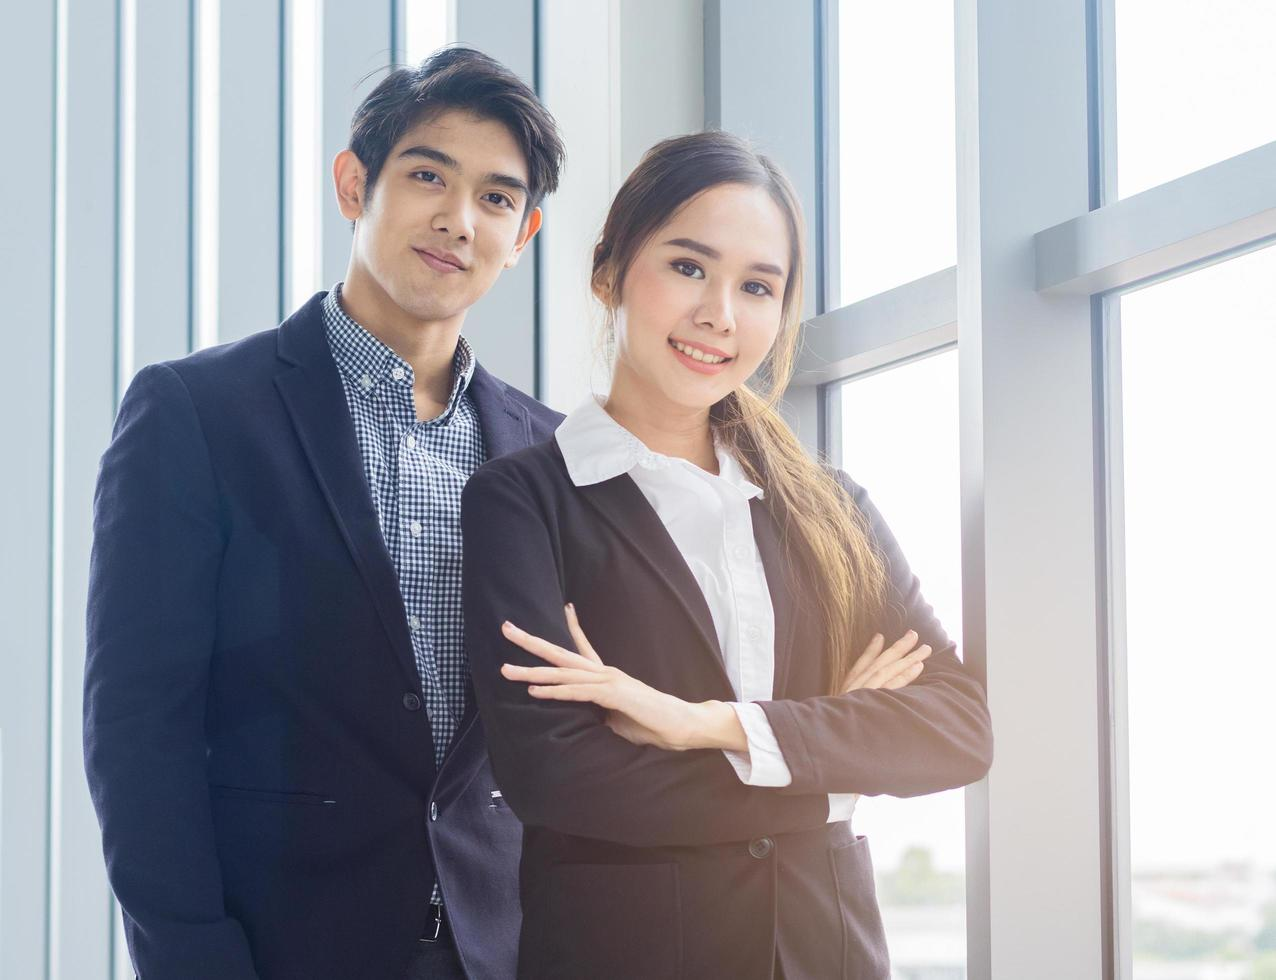 Young successful business people smiling  photo